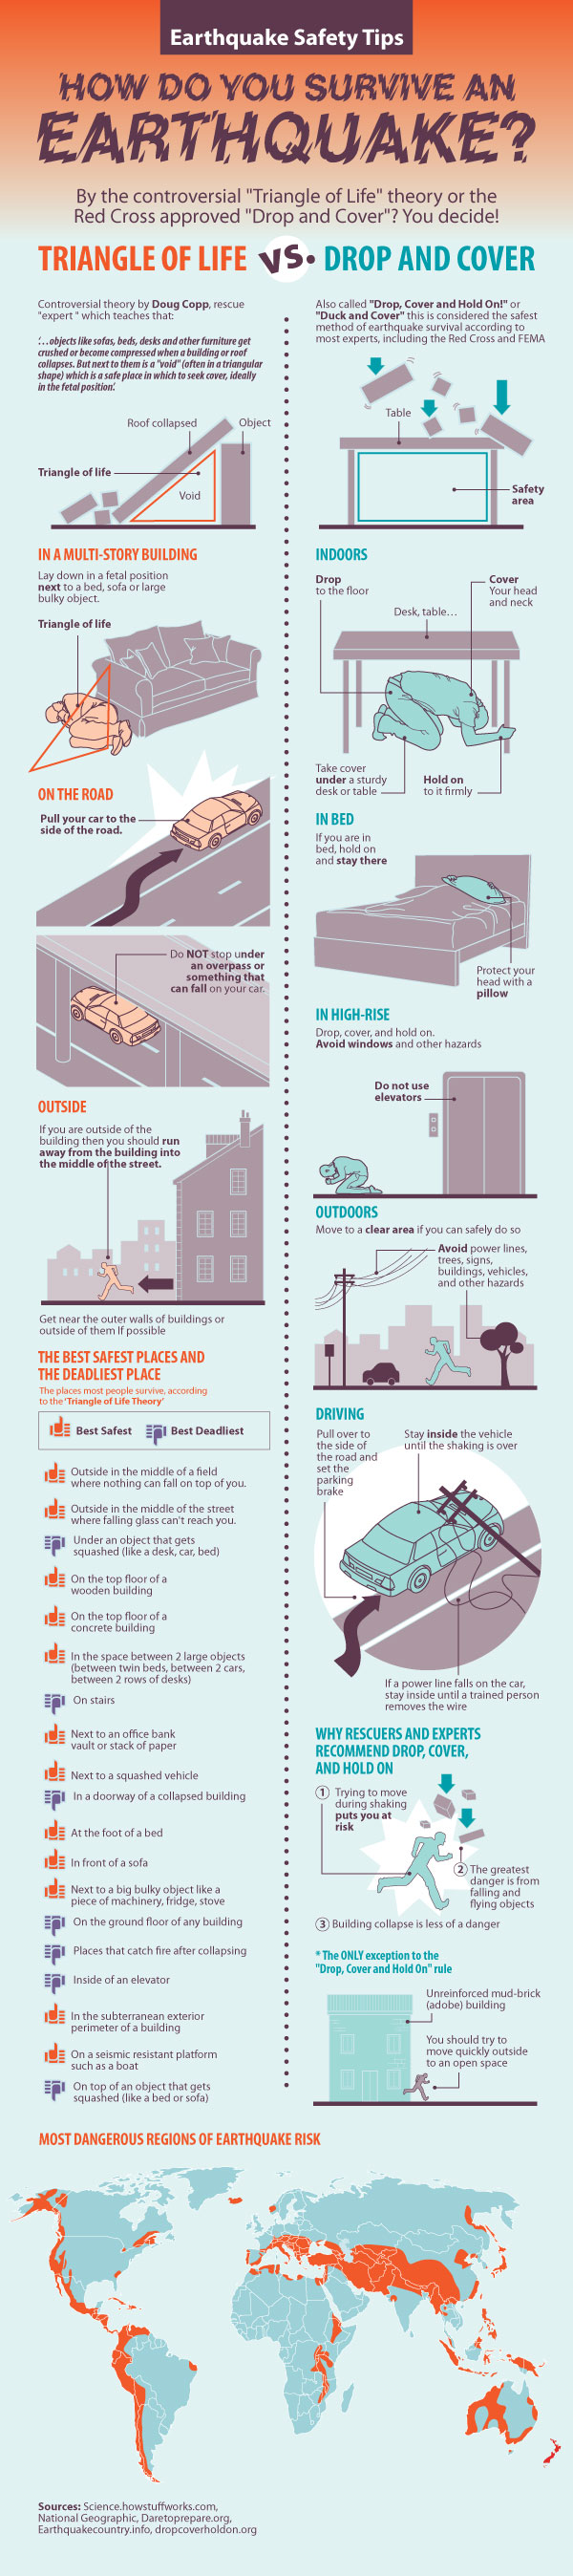 What to do and what not to in Earthquake - Life Safety Tips earthquake,safety,protection,natural,disaster,tips,infographic